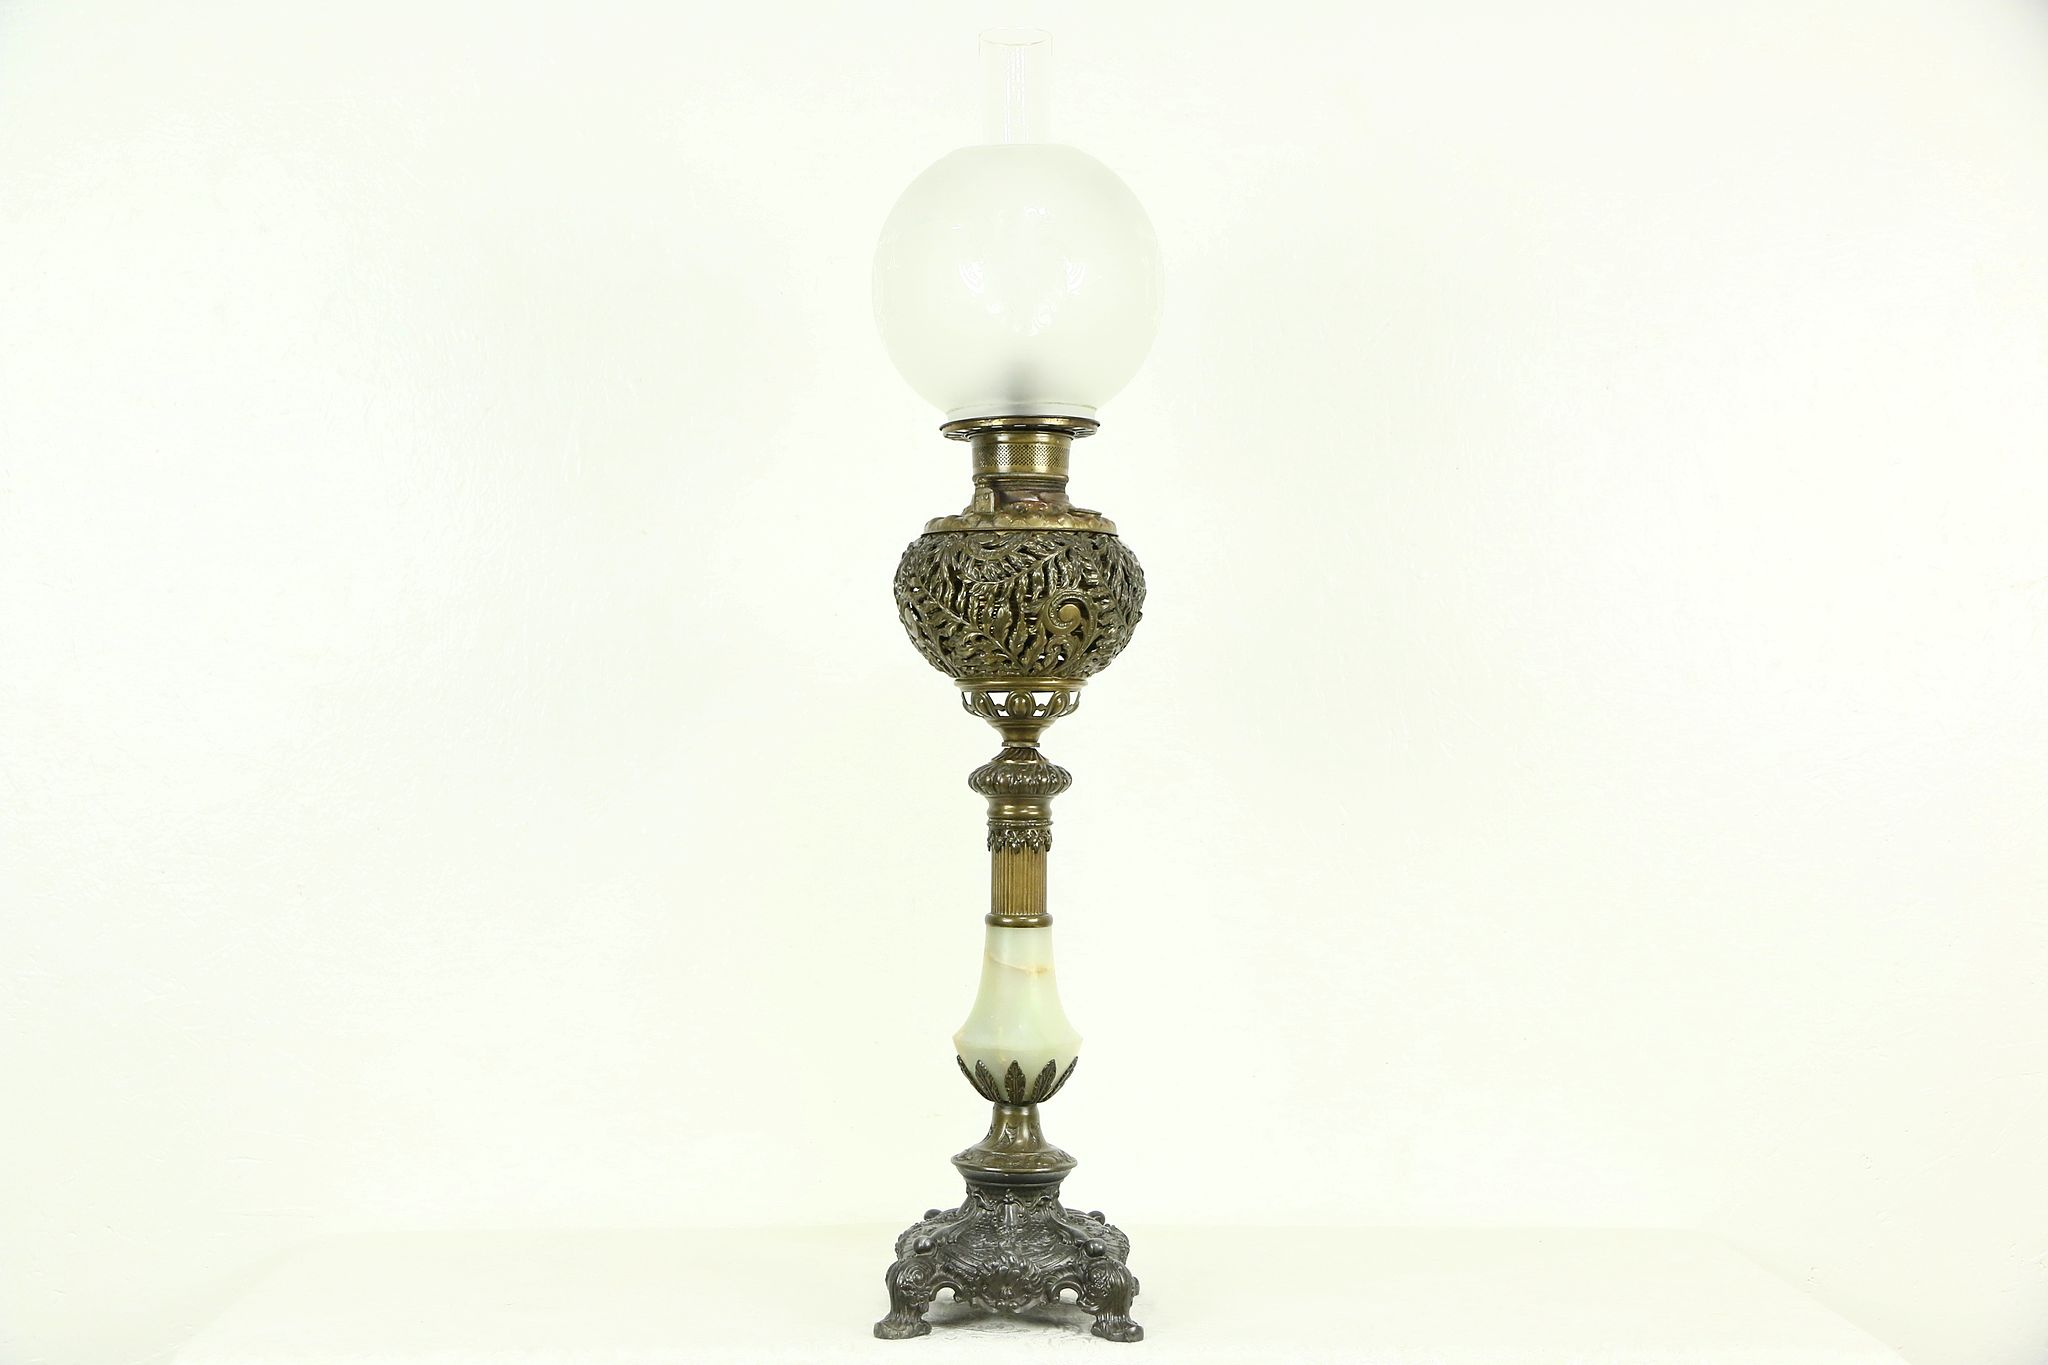 Victorian Antique 1890's Pewter, Brass & Onyx Oil Banquet Lamp, Electrified